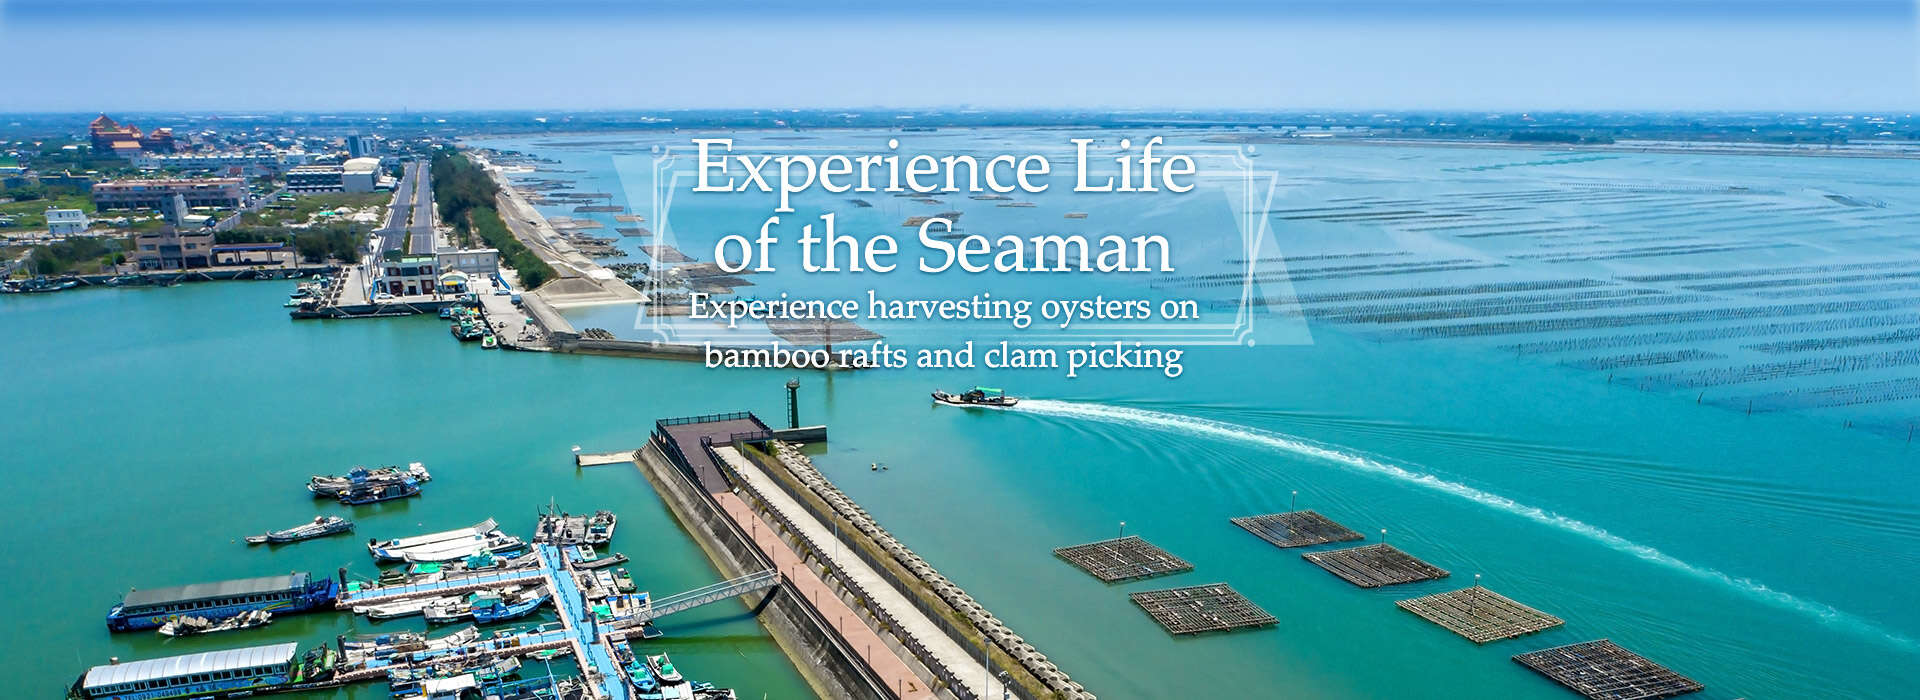 Experience Life of the Seaman